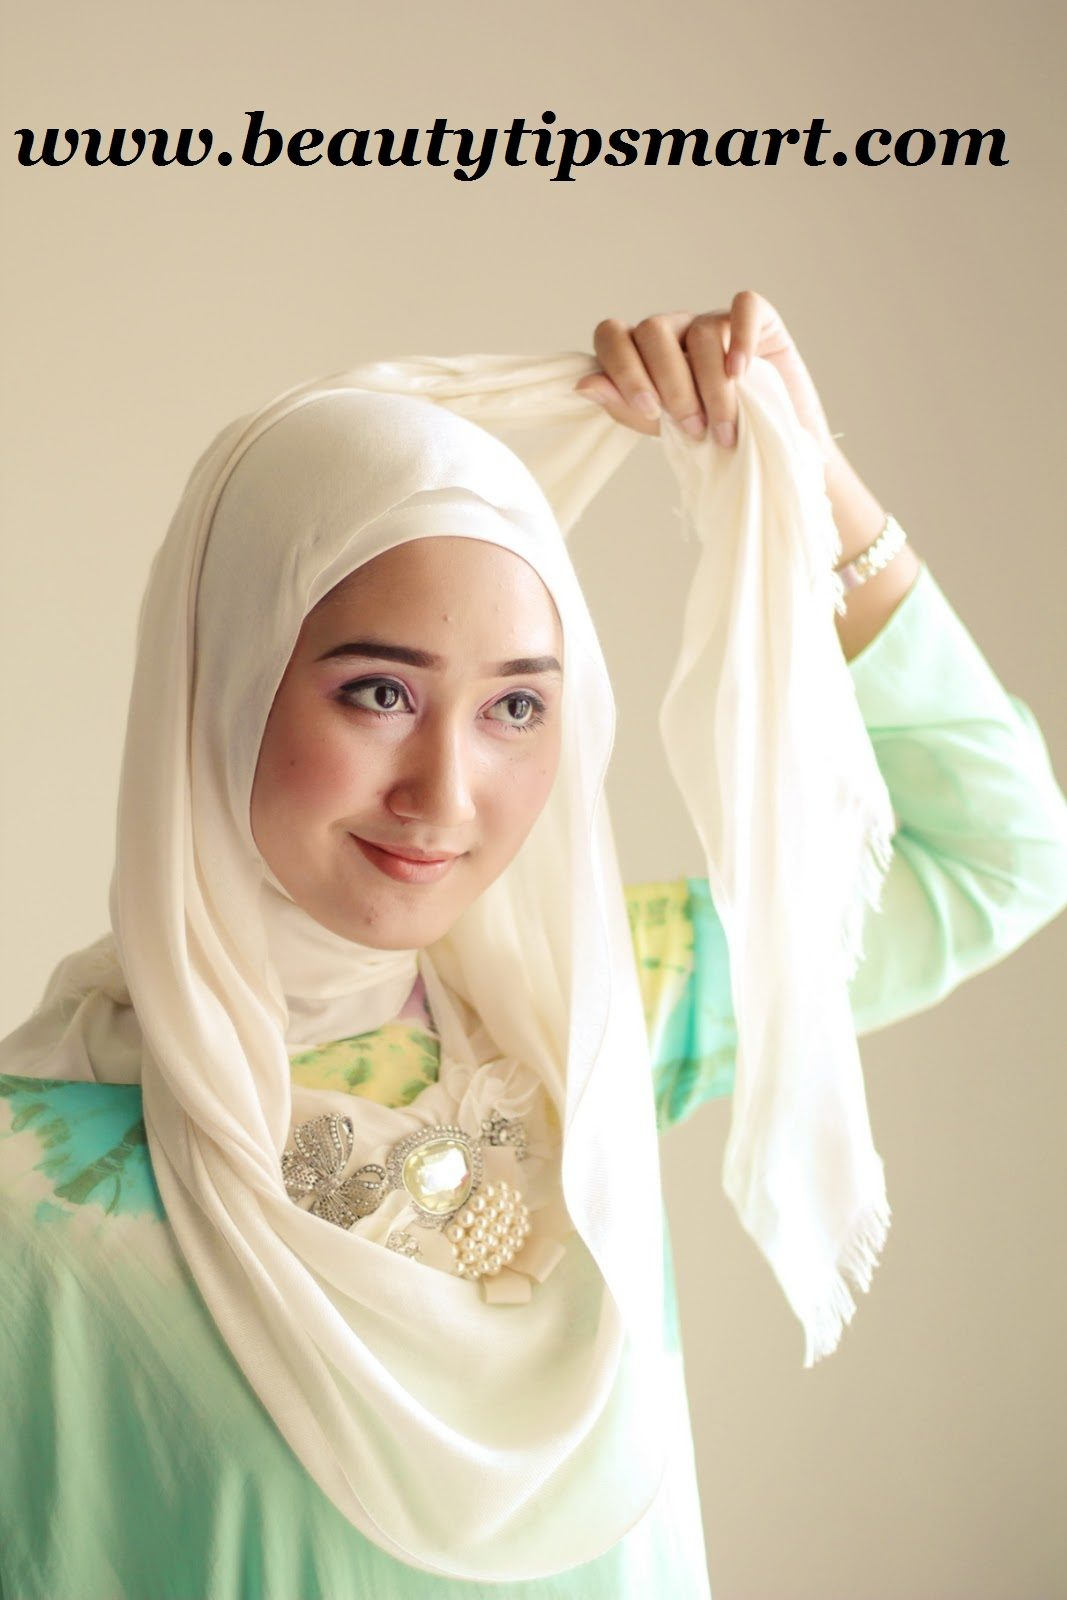 hijab-fashion-styles-tutorials-for-girls-2015-trends-1963628